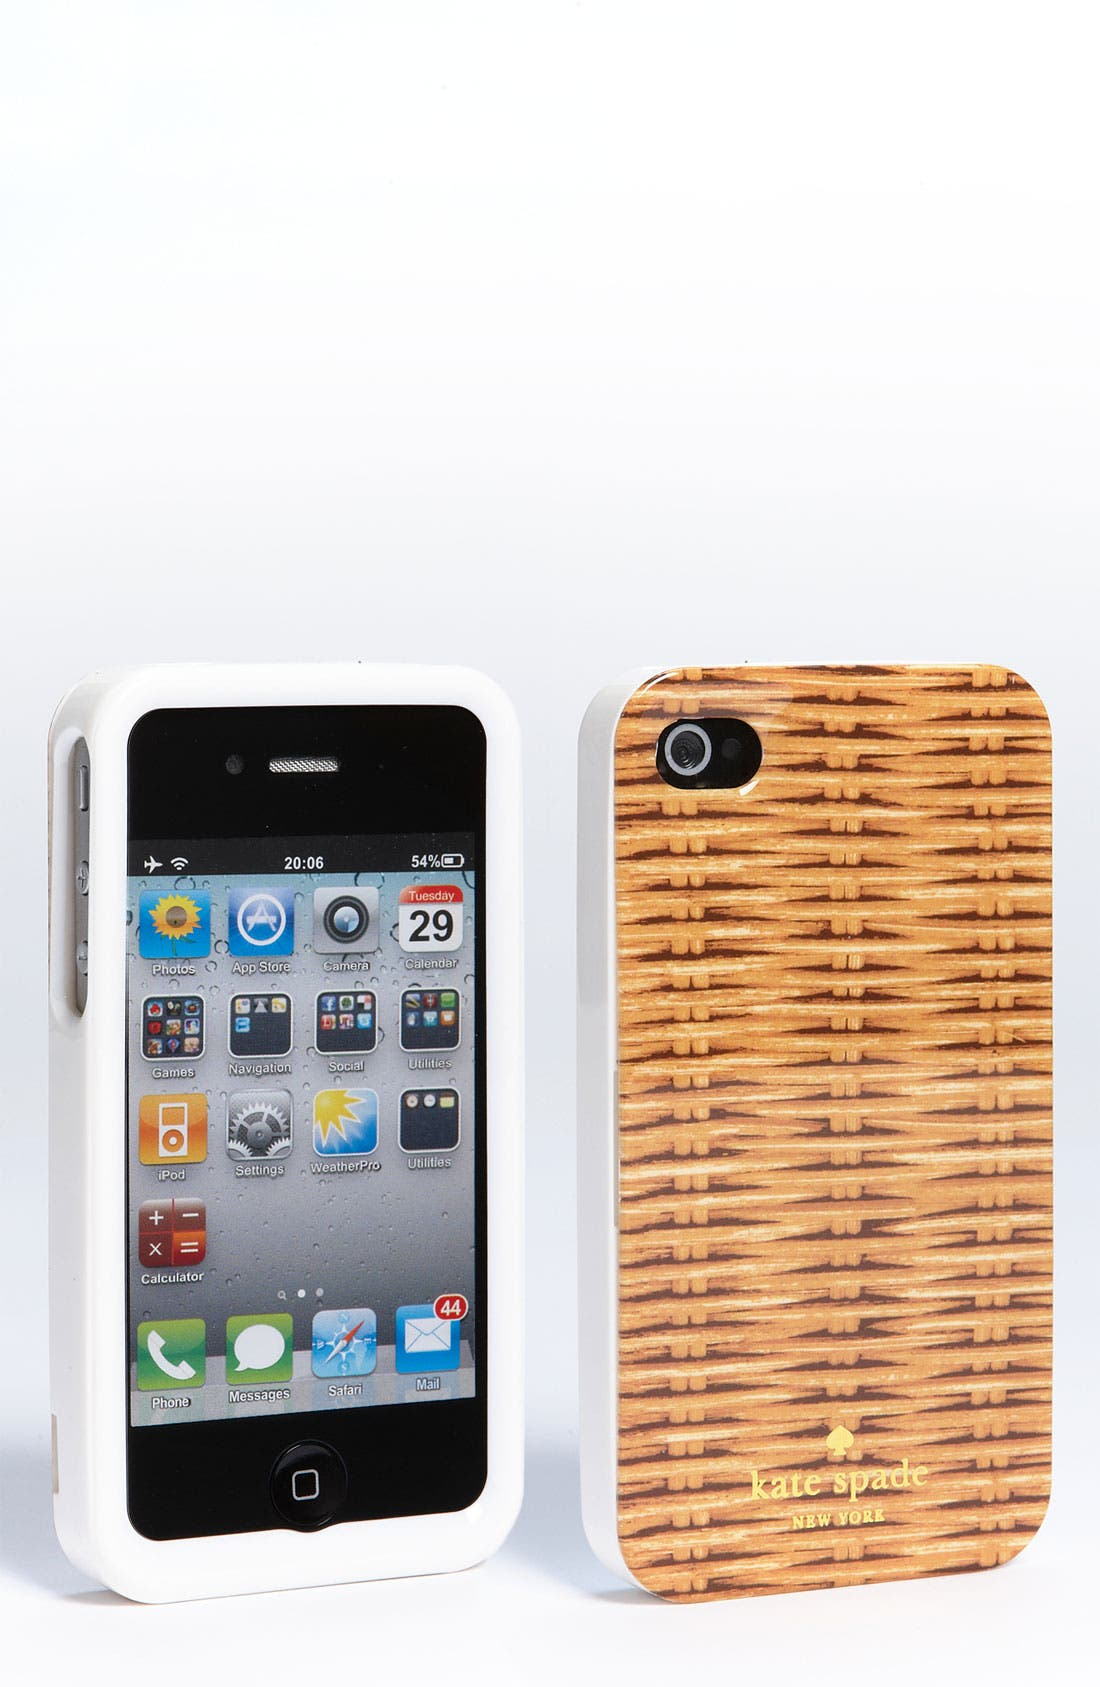 Alternate Image 1 Selected - kate spade new york 'wicker print' iPhone 4 & 4S case